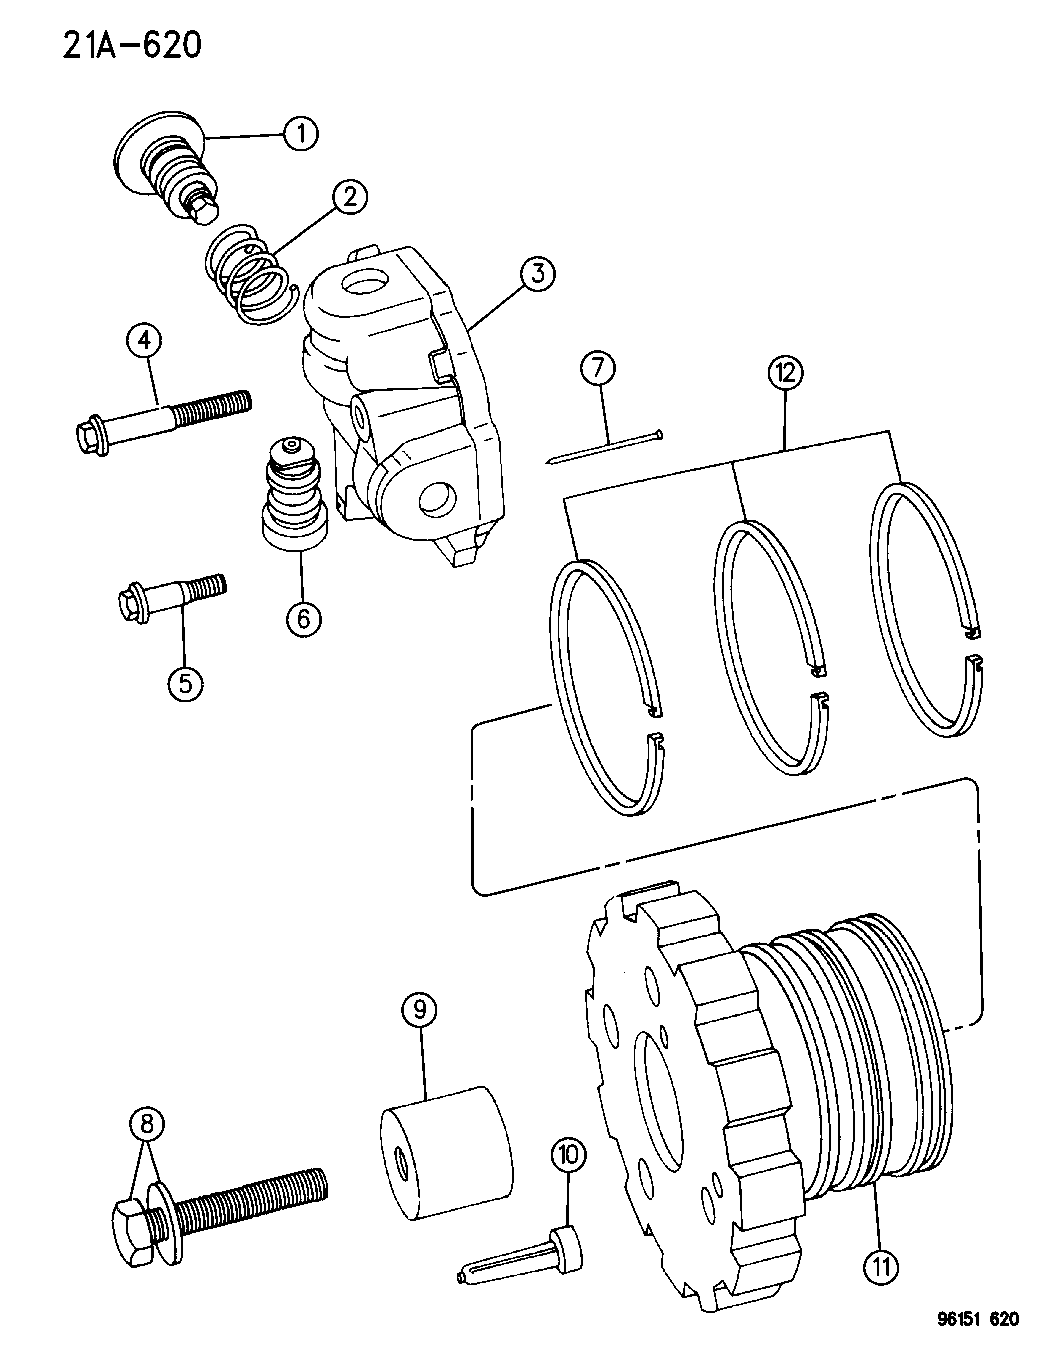 dodge alternator wiring 1996 dodge neon alternator wiring diagram e1 wiring diagram dodge cummins alternator wiring diagram dodge neon alternator wiring diagram